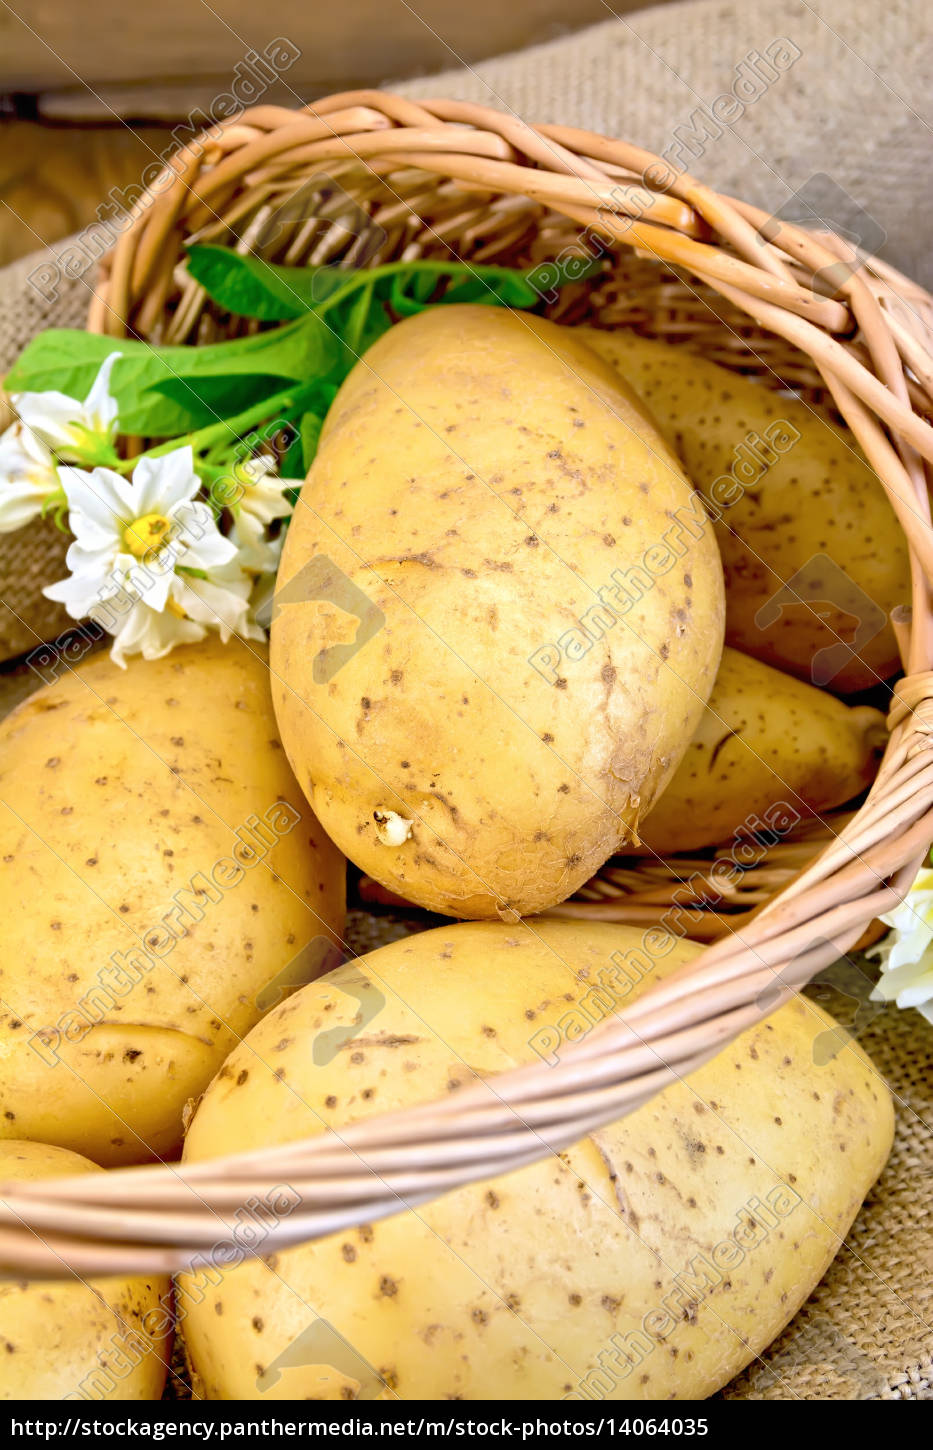 potatoes, yellow, with, flower, in, basket - 14064035